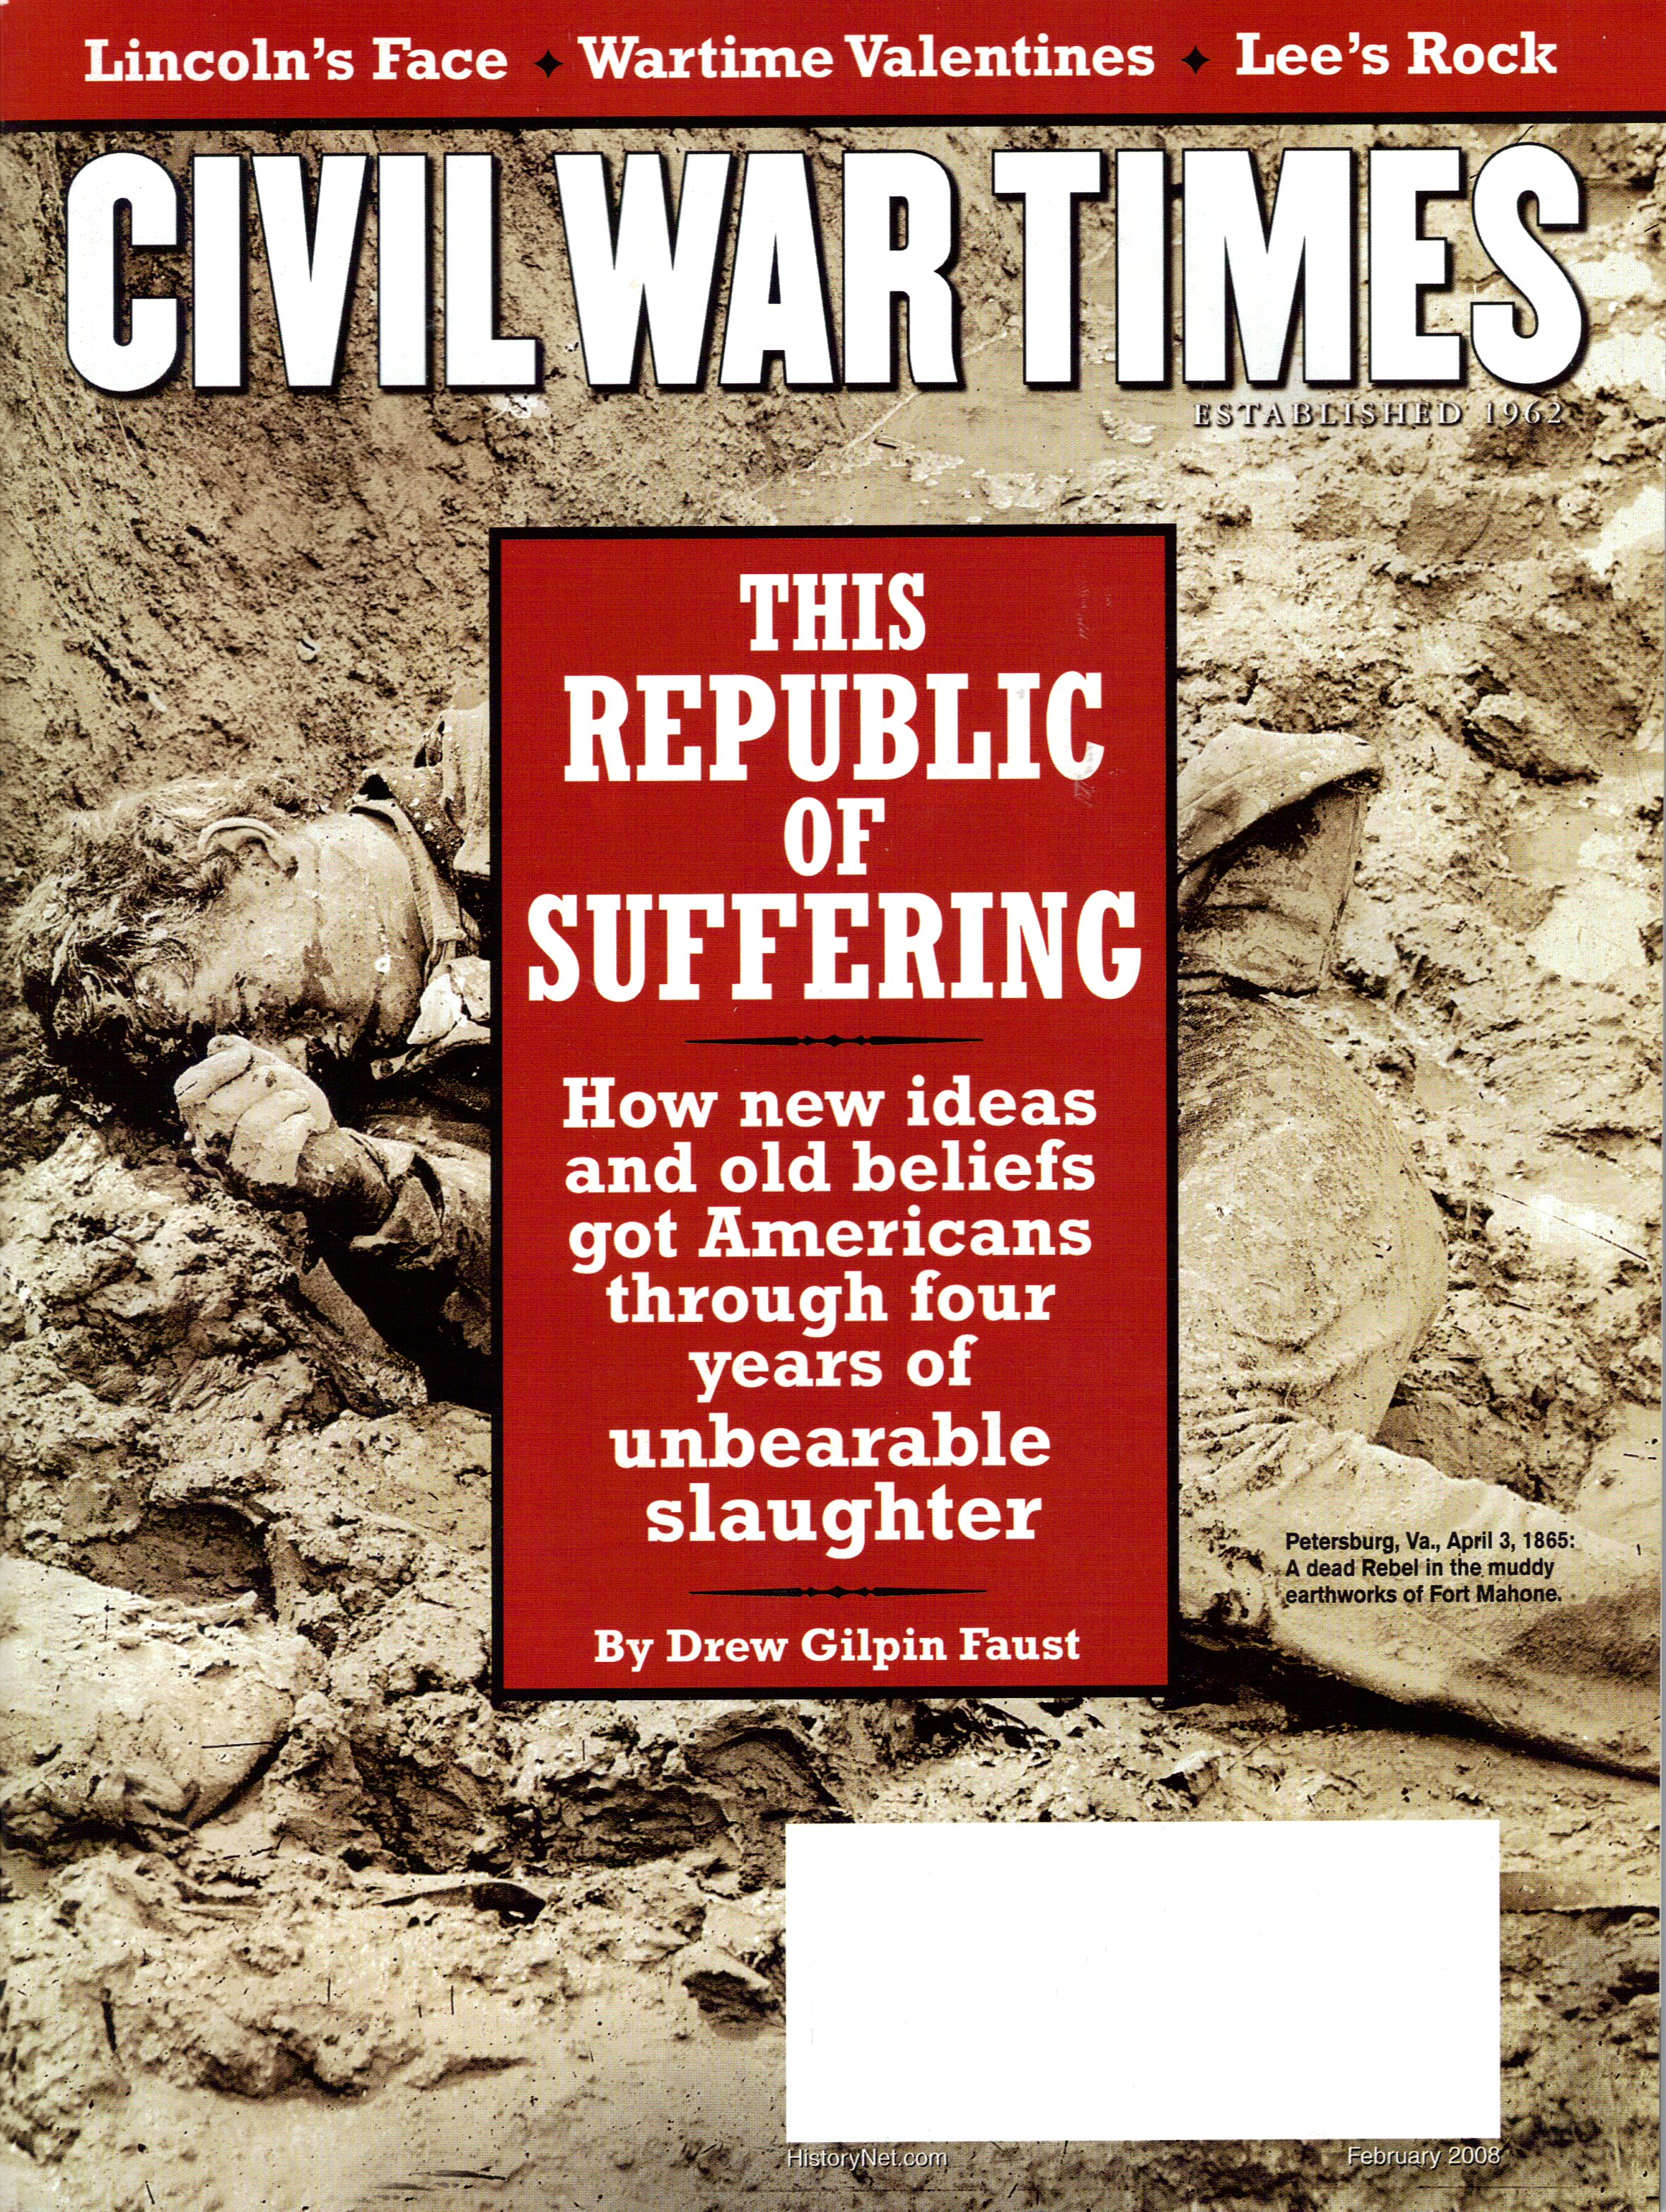 Civil War Times, Volume 47, Number 1 (February 2008)